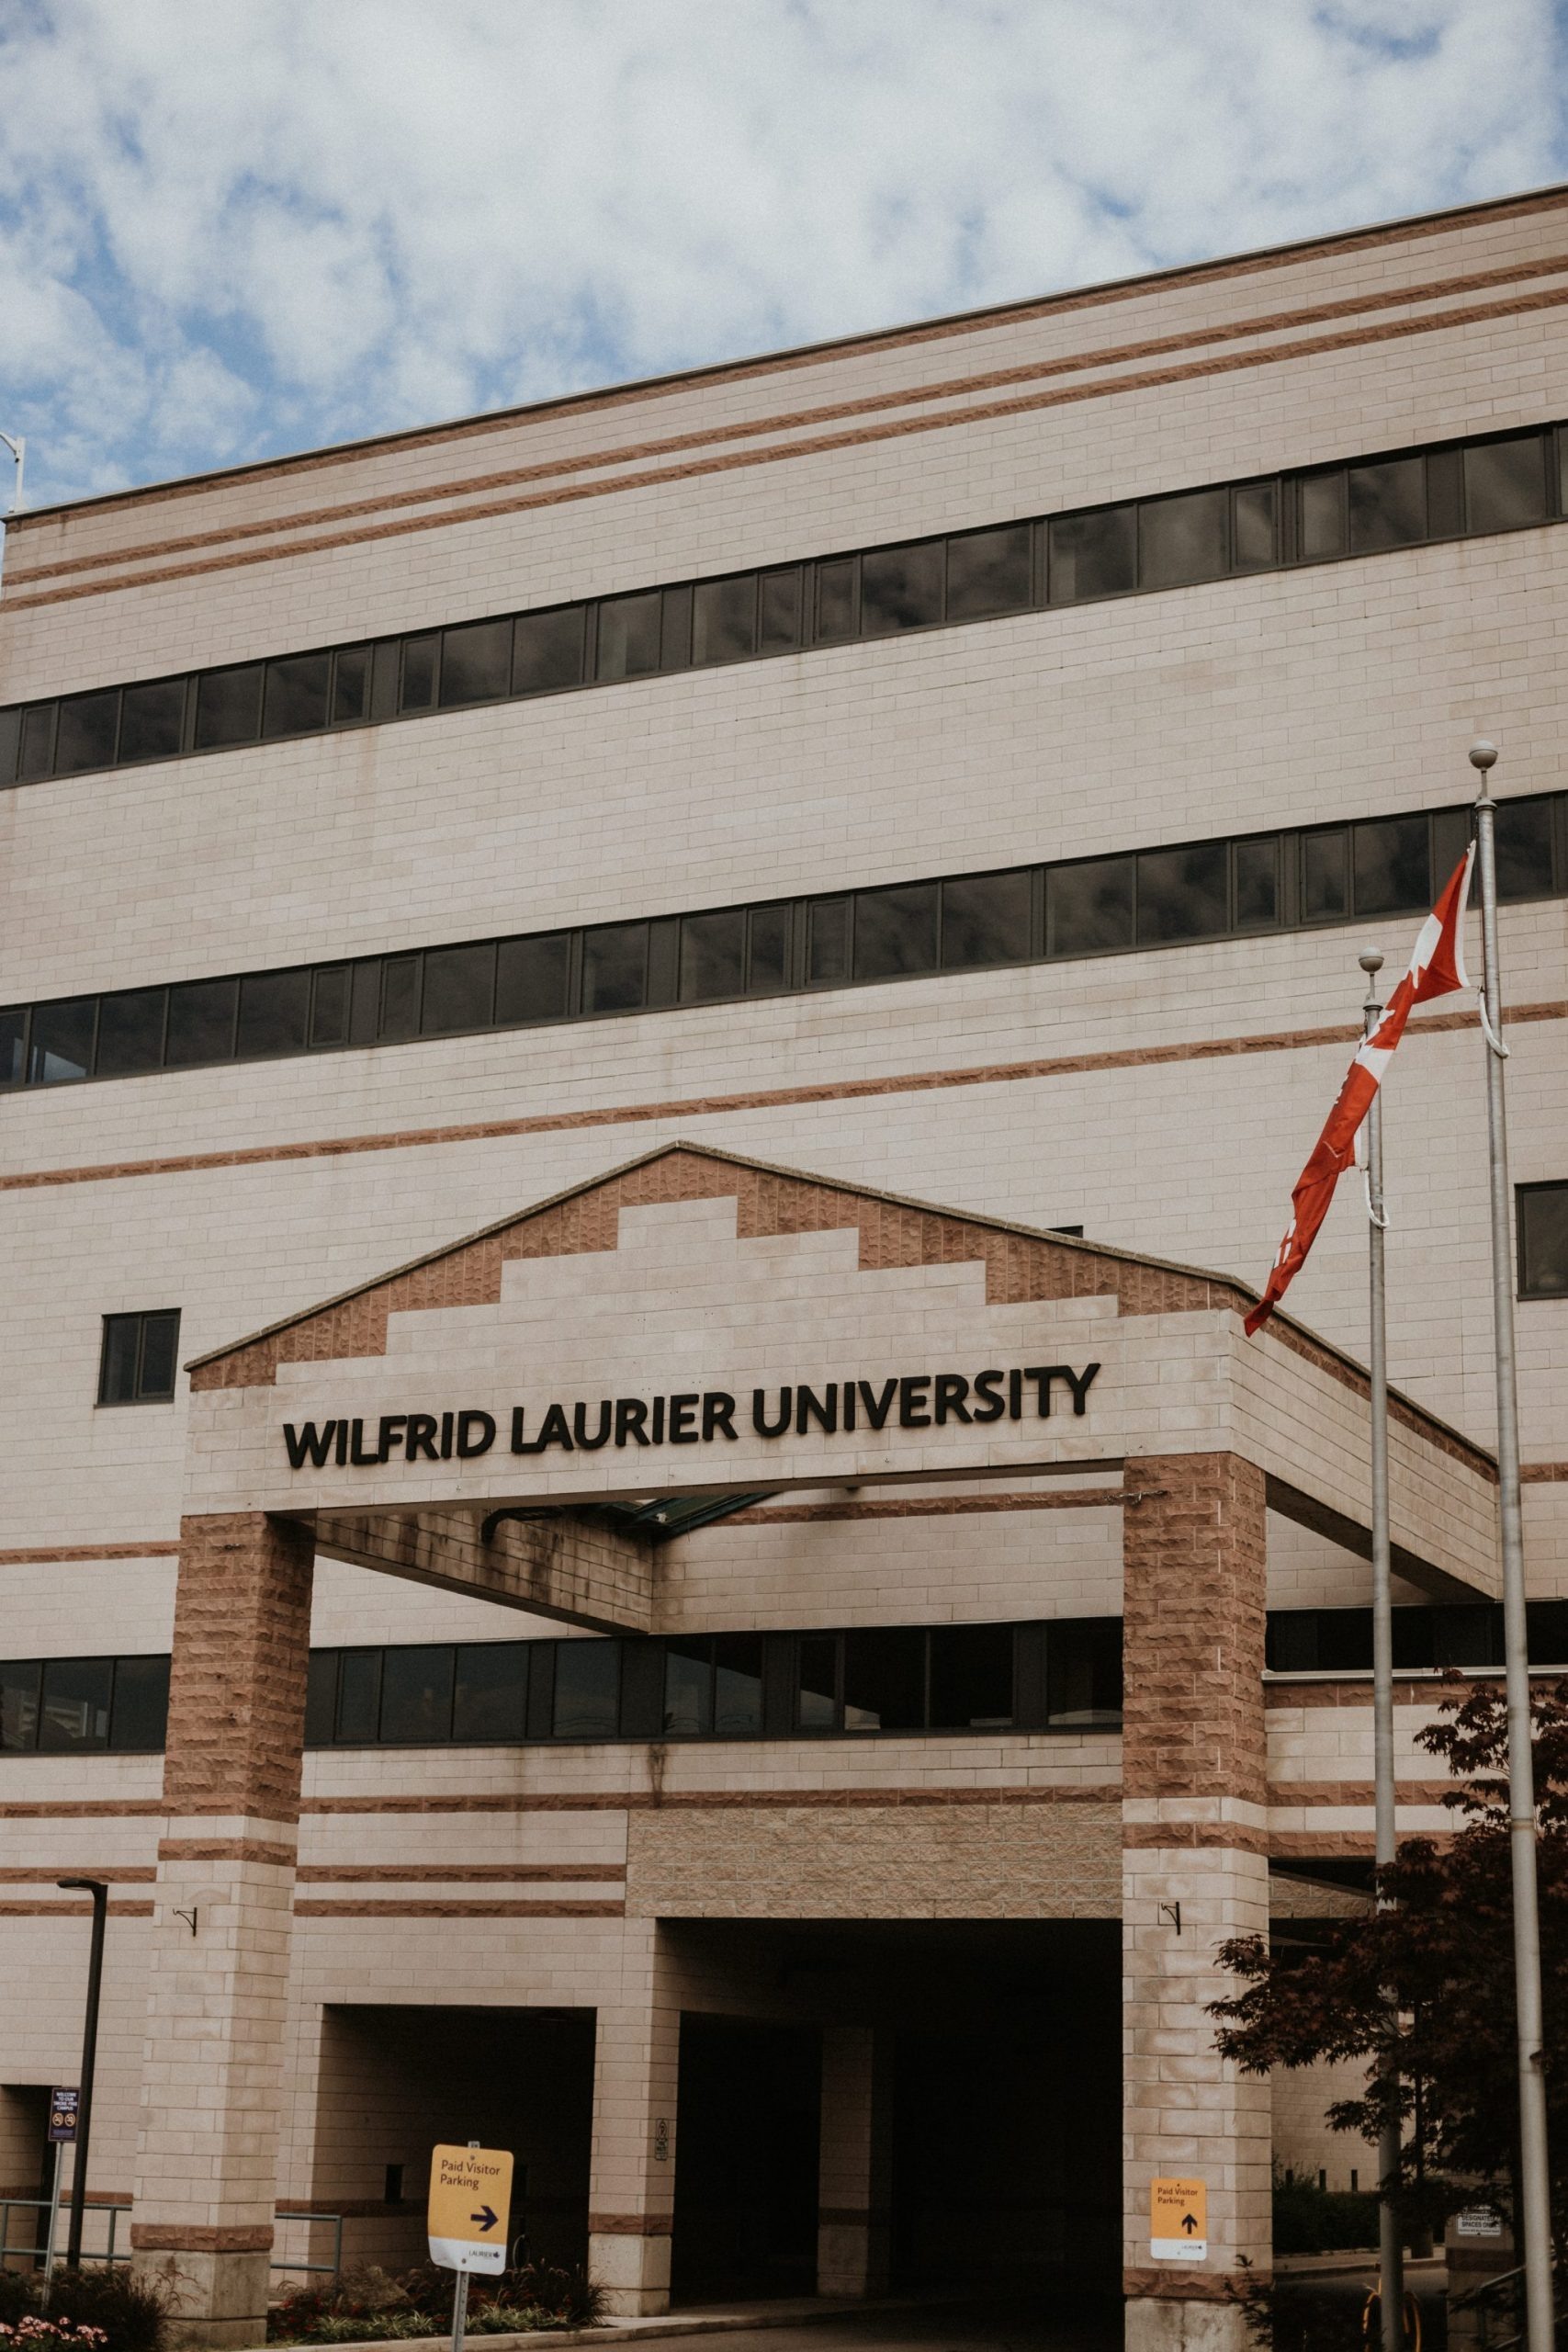 UPDATED: Laurier responds to offensive TikTok video posted by student